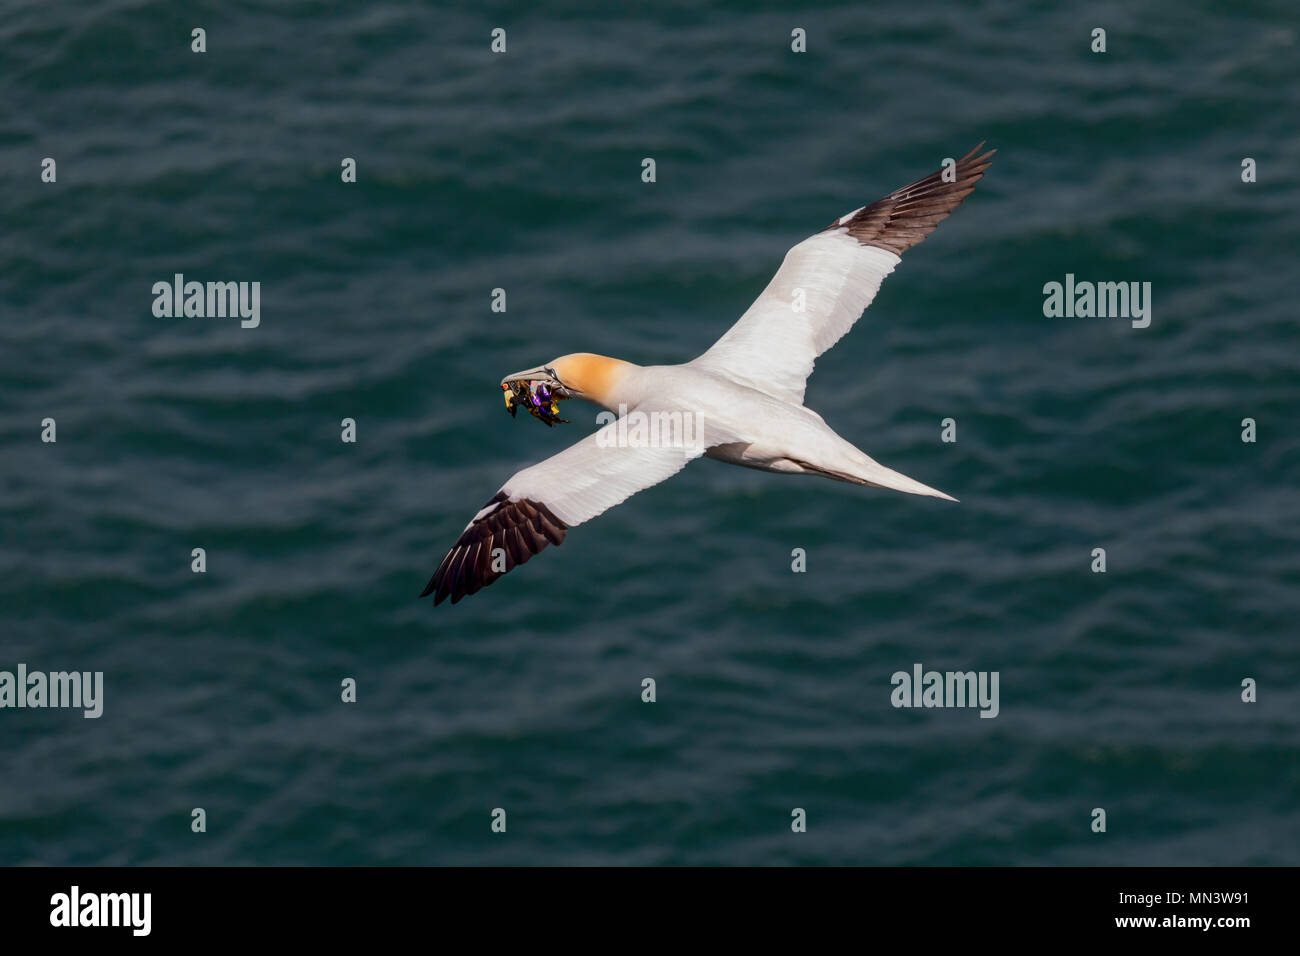 Nest building sea bird flying over ocean carrying candy wrappers in its beak - Stock Image